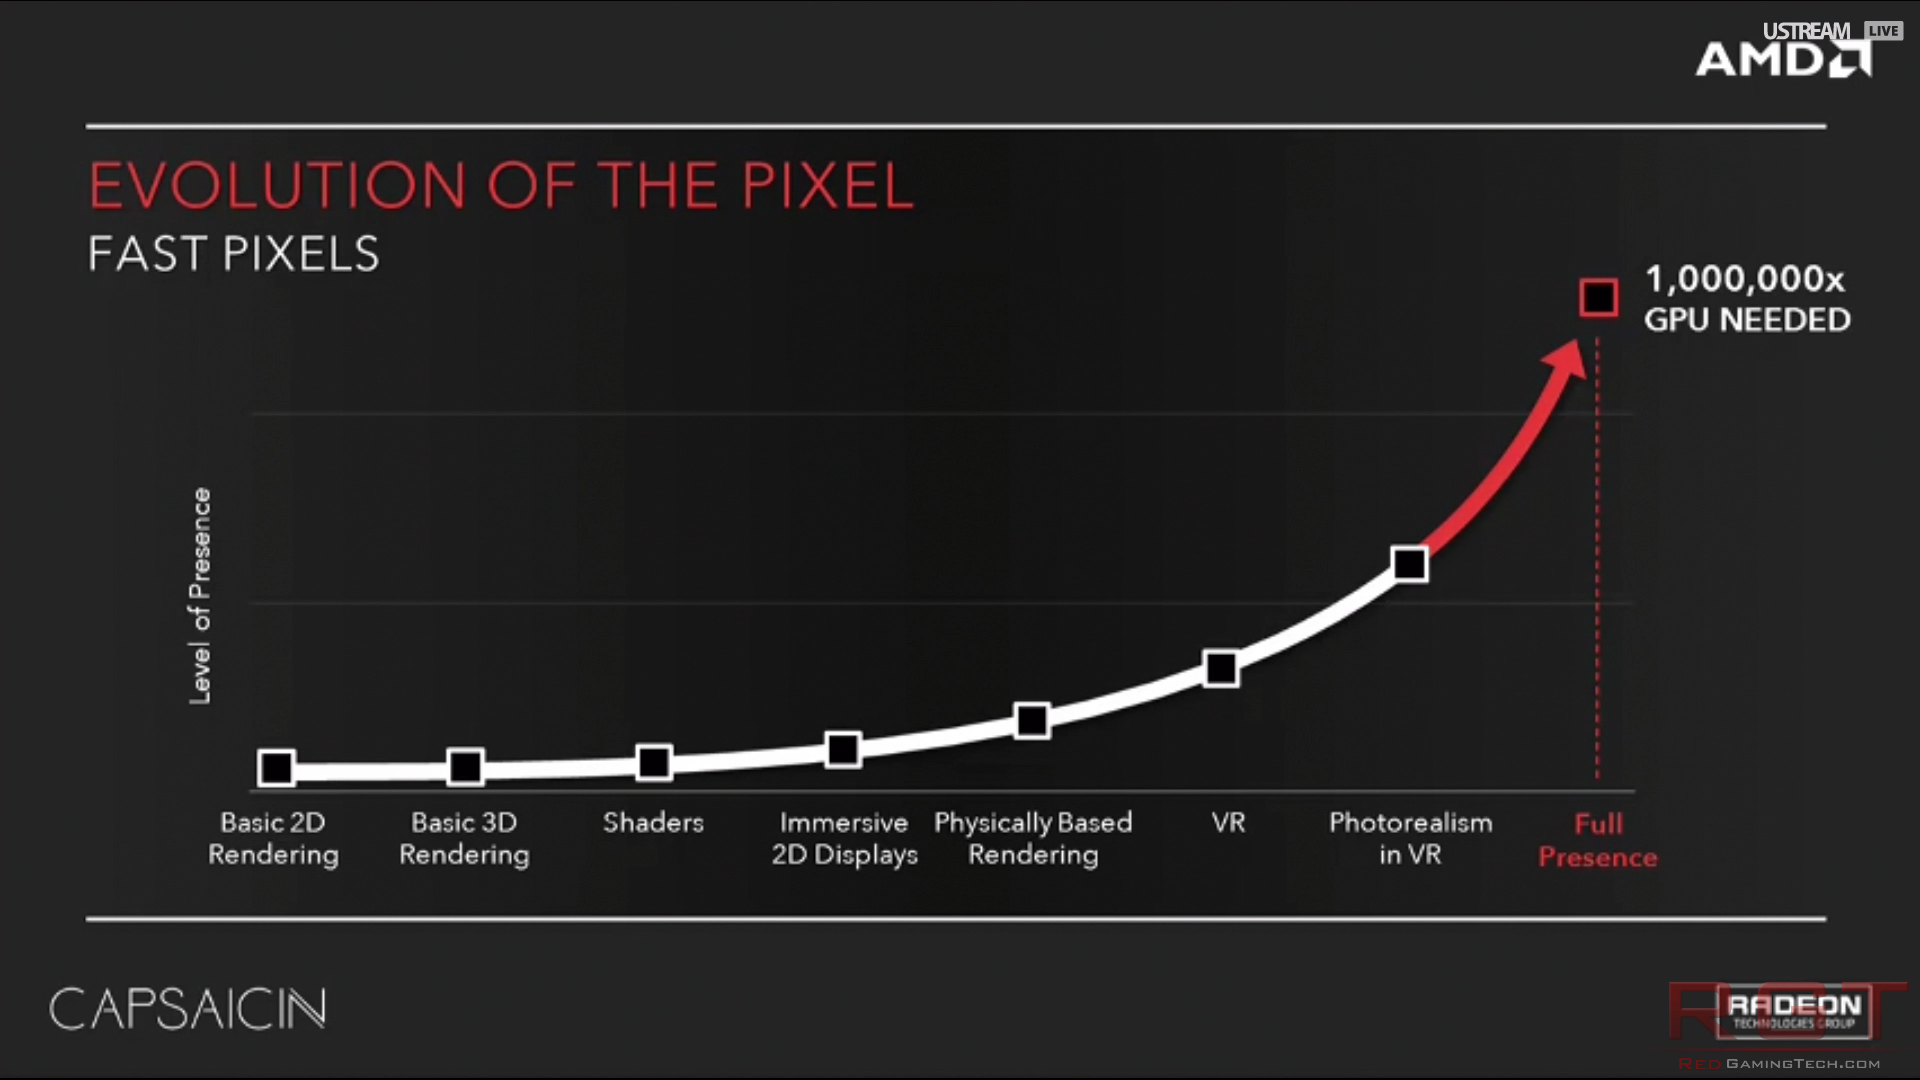 AMD-Capsaicin-evolution-of-the-pixel